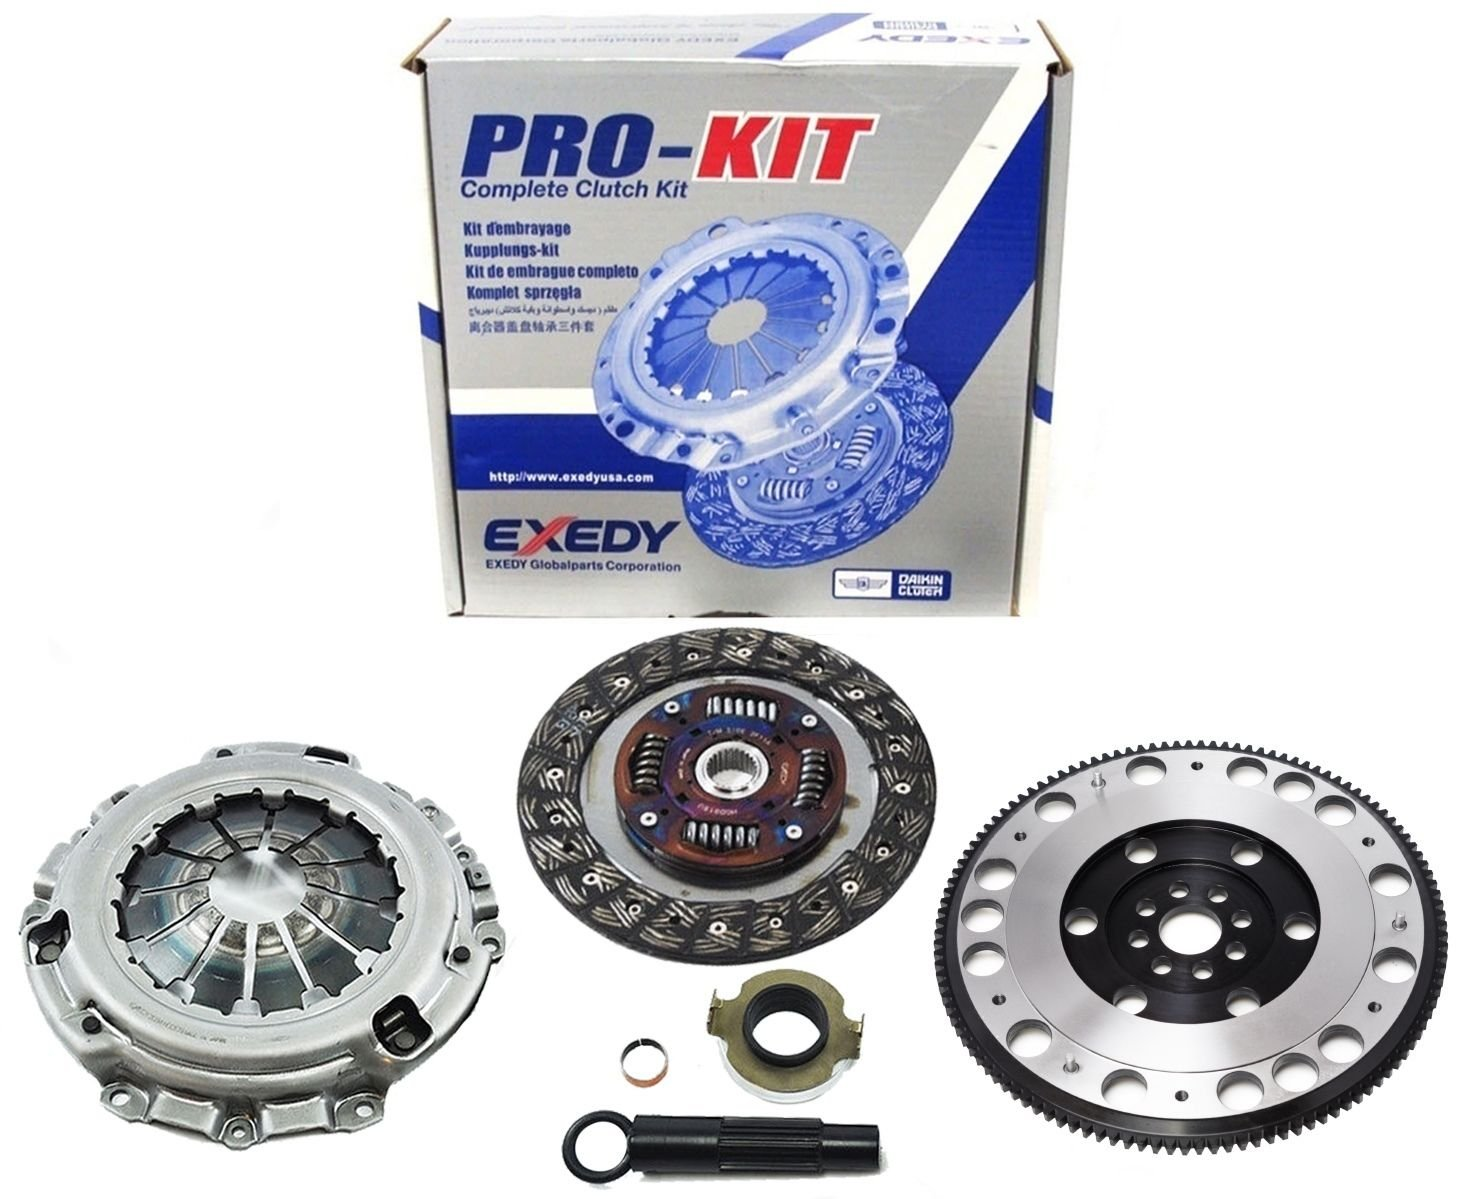 Amazon.com: EXEDY CLUTCH PRO-KIT+RACING CHROMOLY FLYWHEEL ACURA RSX TYPE-S CIVIC SI K20: Automotive